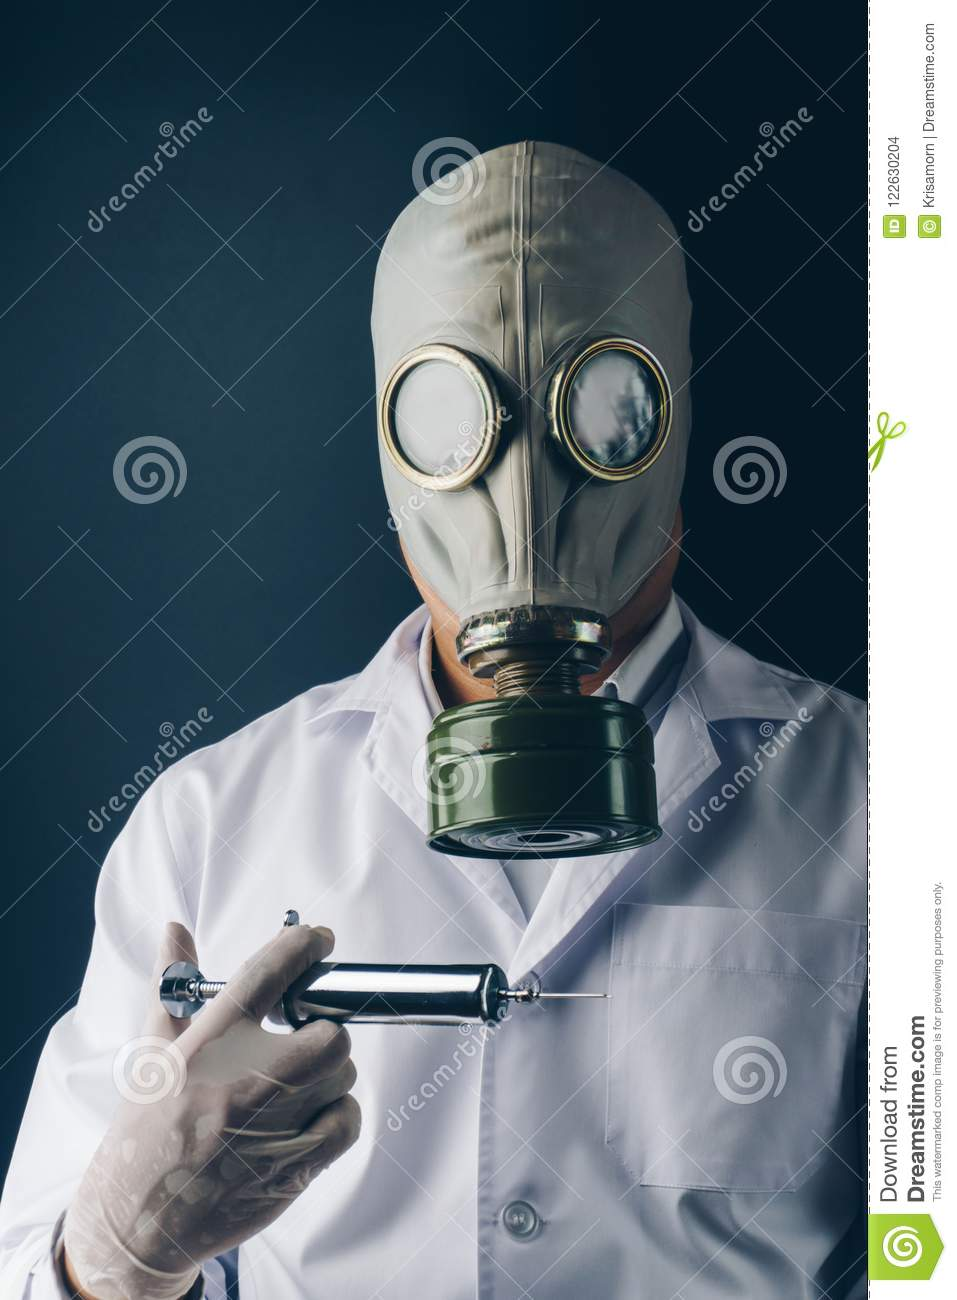 A Scary Doctor In Gas Mask With A Big Stainless Steel